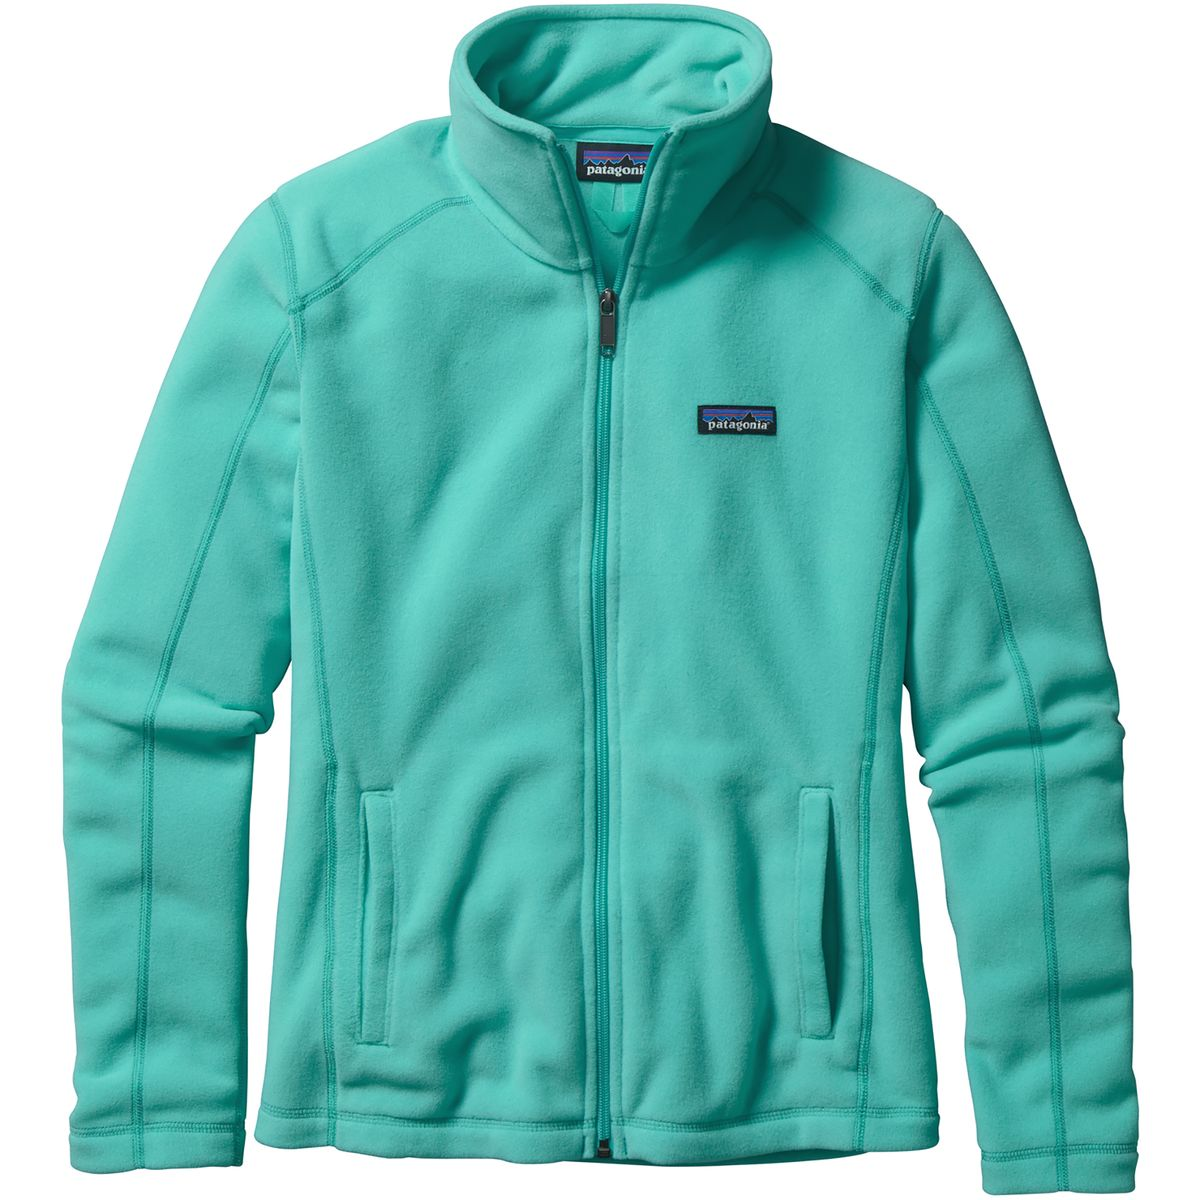 Patagonia Micro D Fleece Jacket in Howling Turquoise | Everything ...